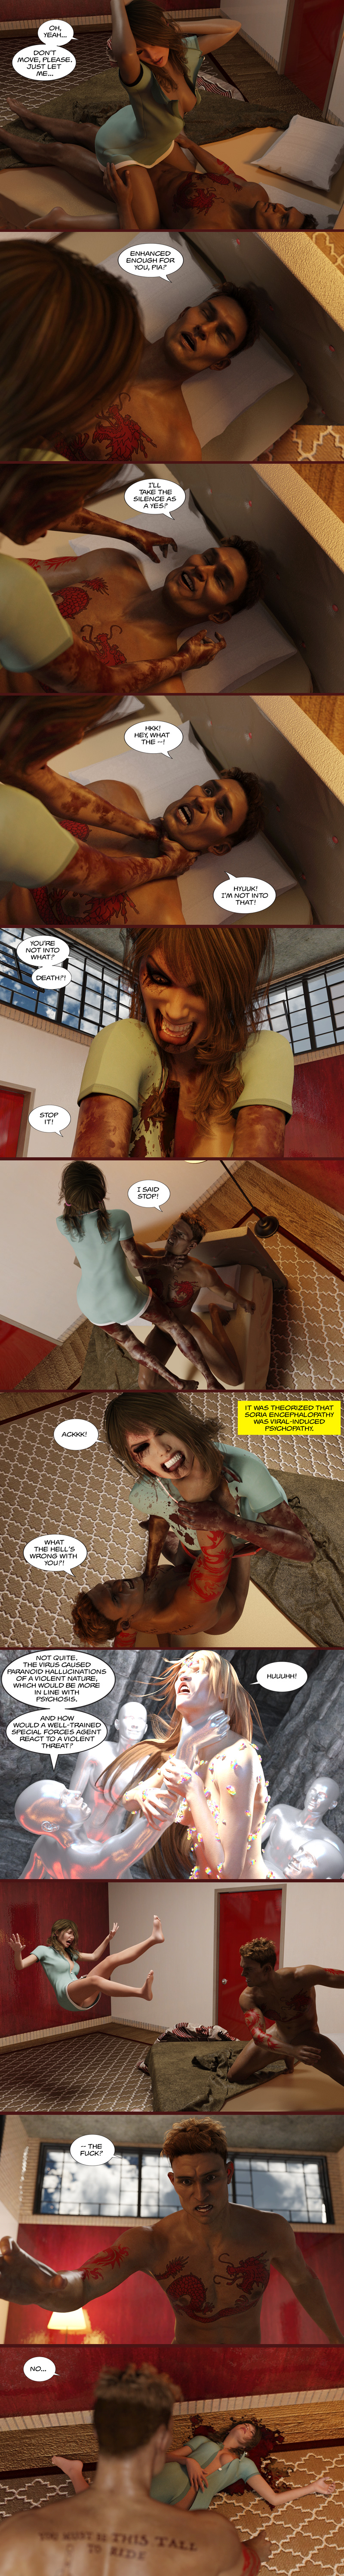 Chapter 17, page 29 – Oscar's first soriapathic episode